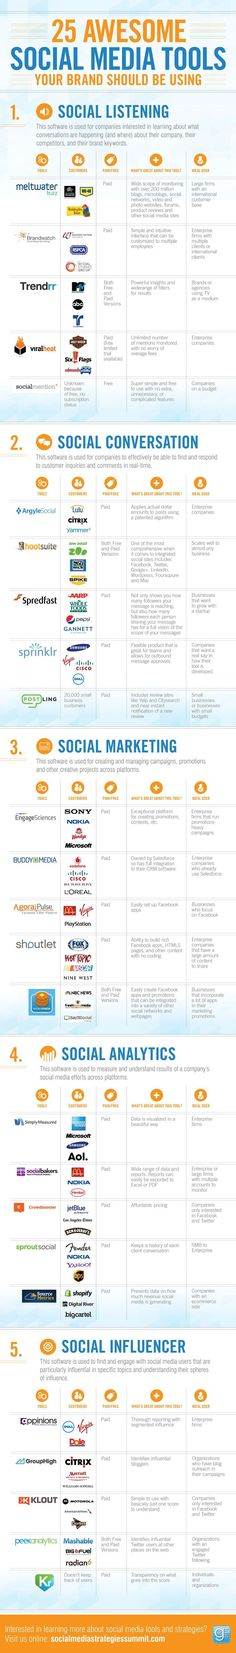 25 Social Media Tools Your Brand Should Be Using #infographic